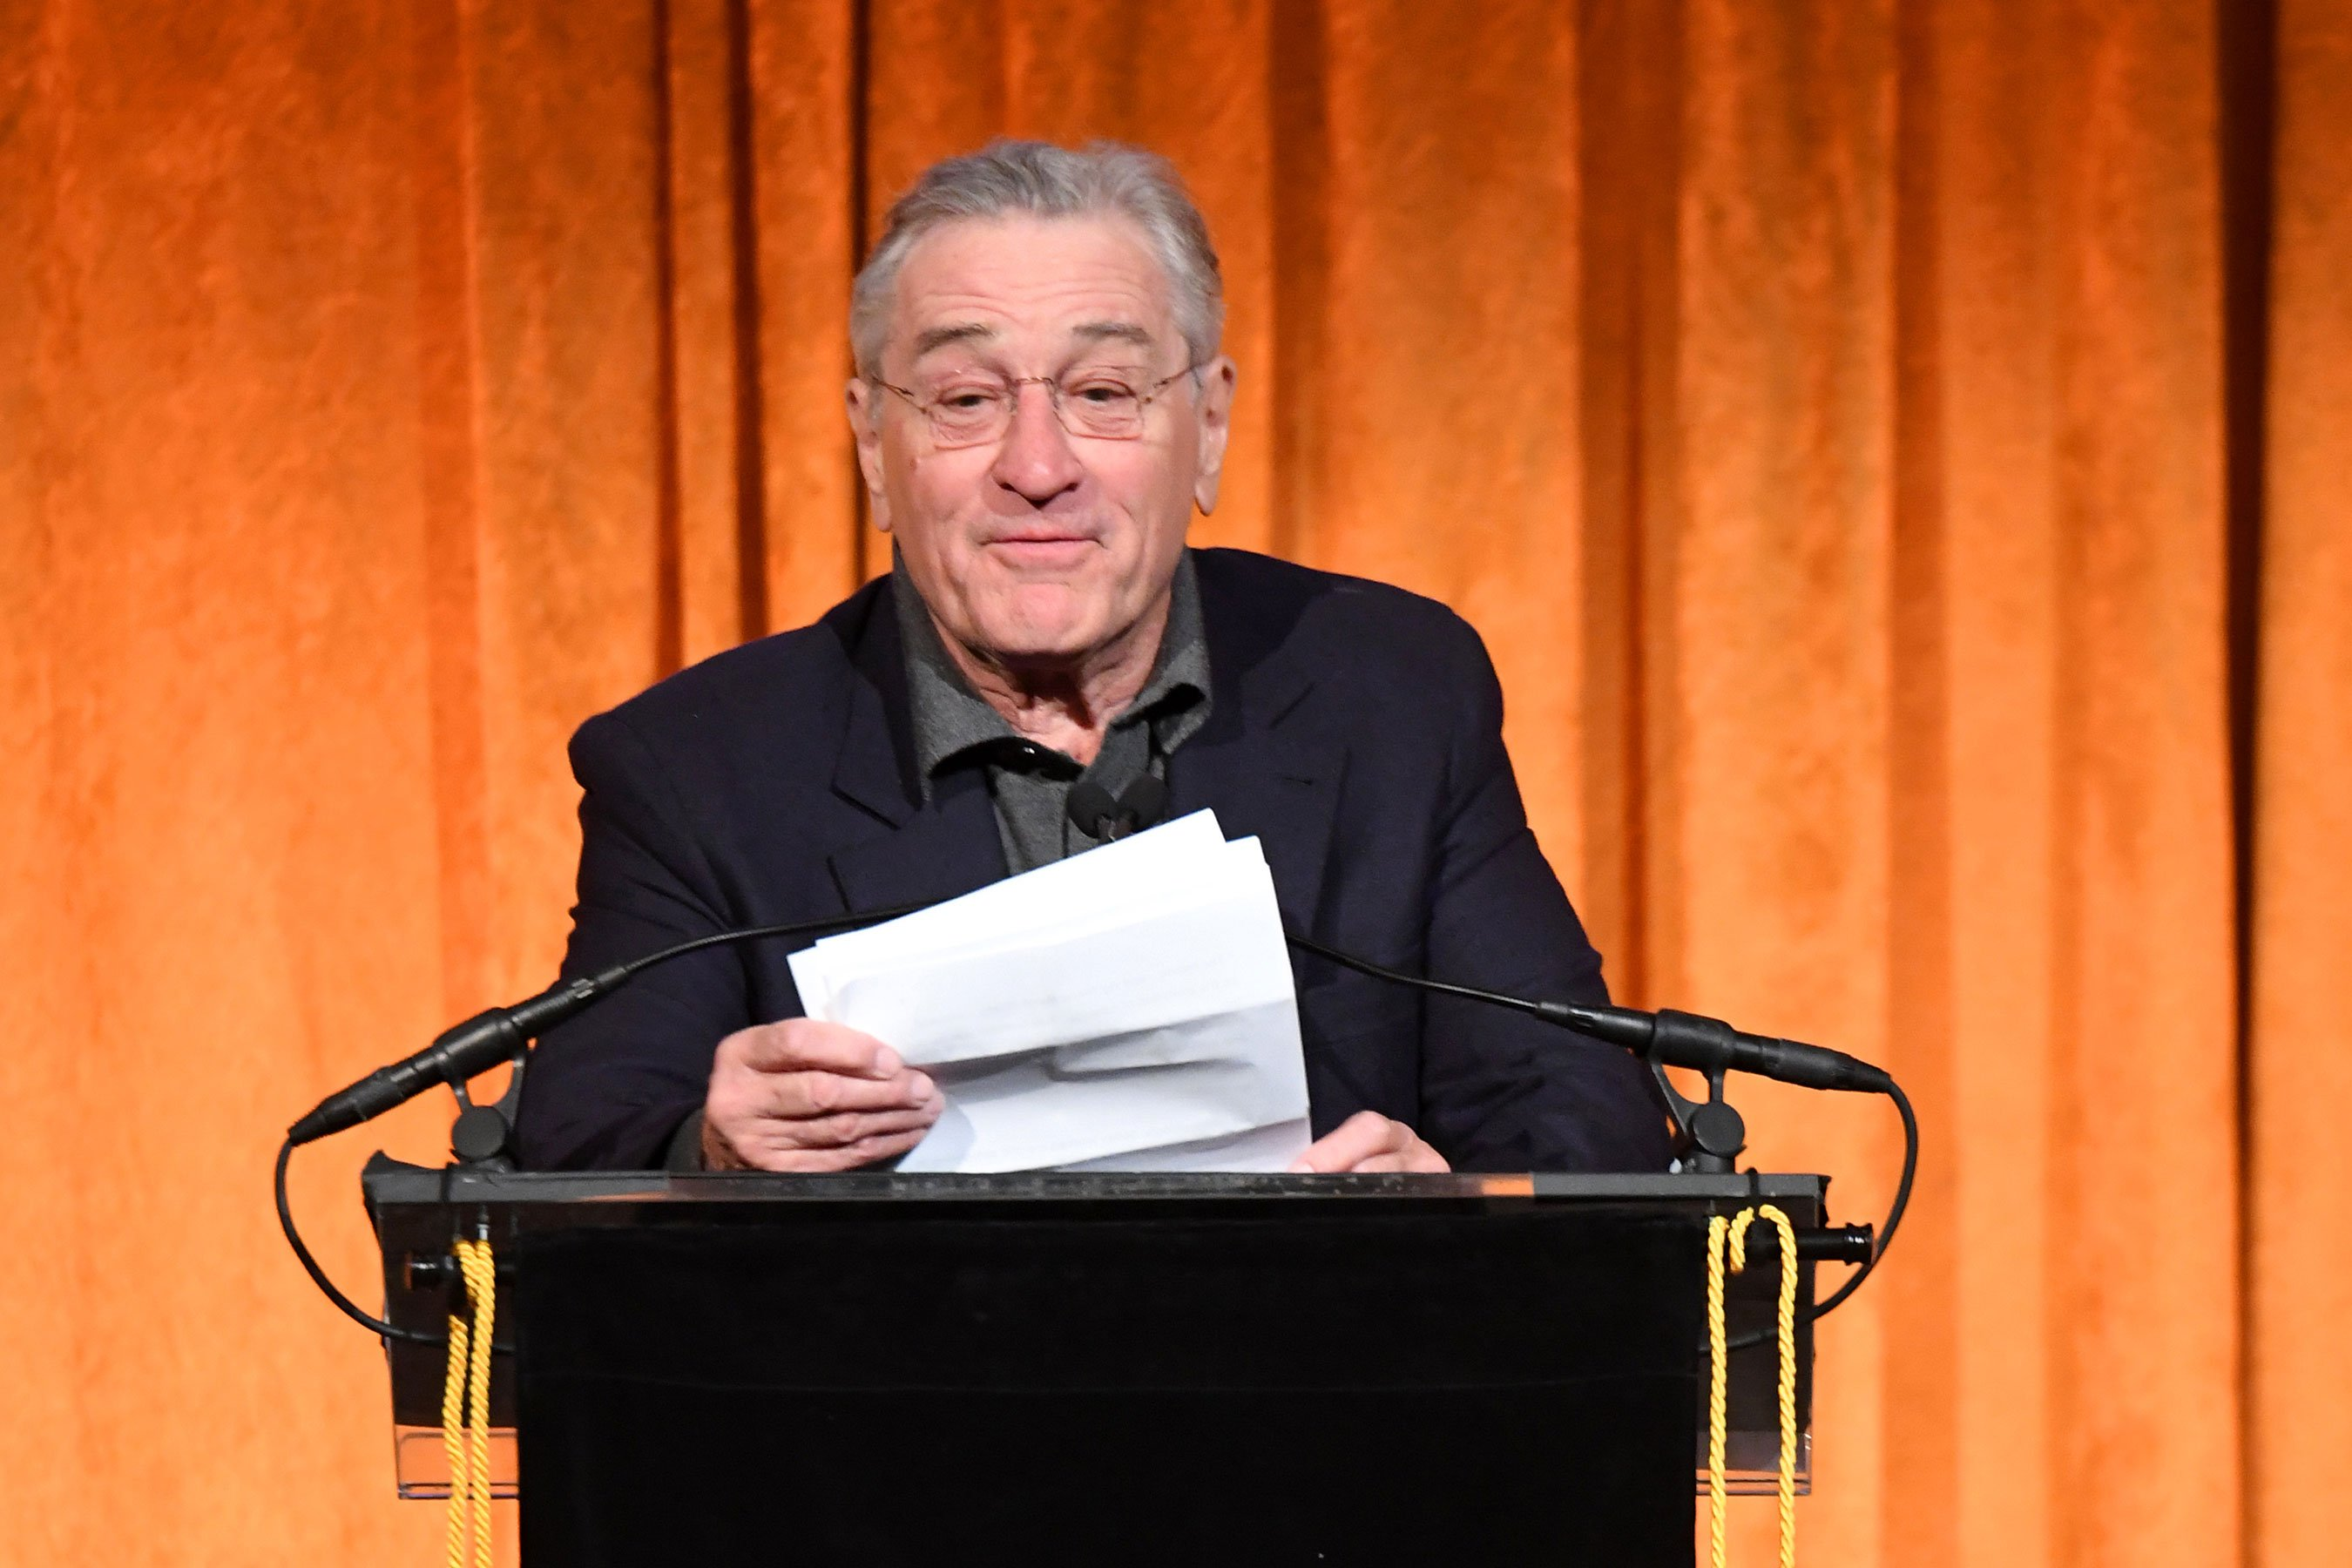 Robert De Niro goes on profanity-laced tirade against Trump at awards gala